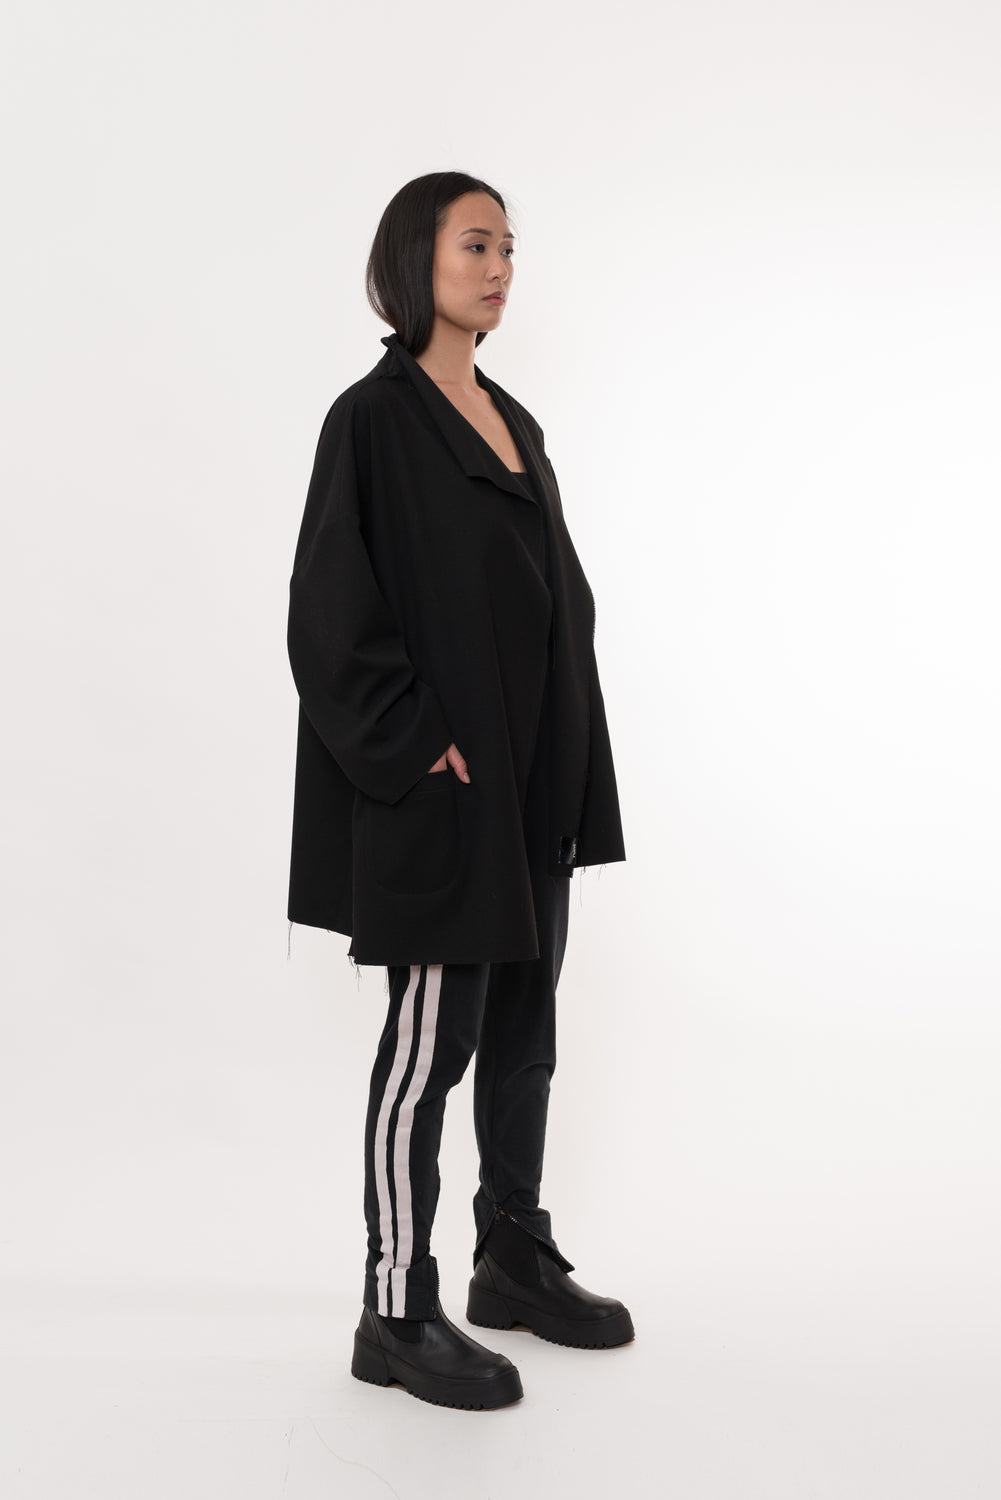 Oversized coat - casacomostyle